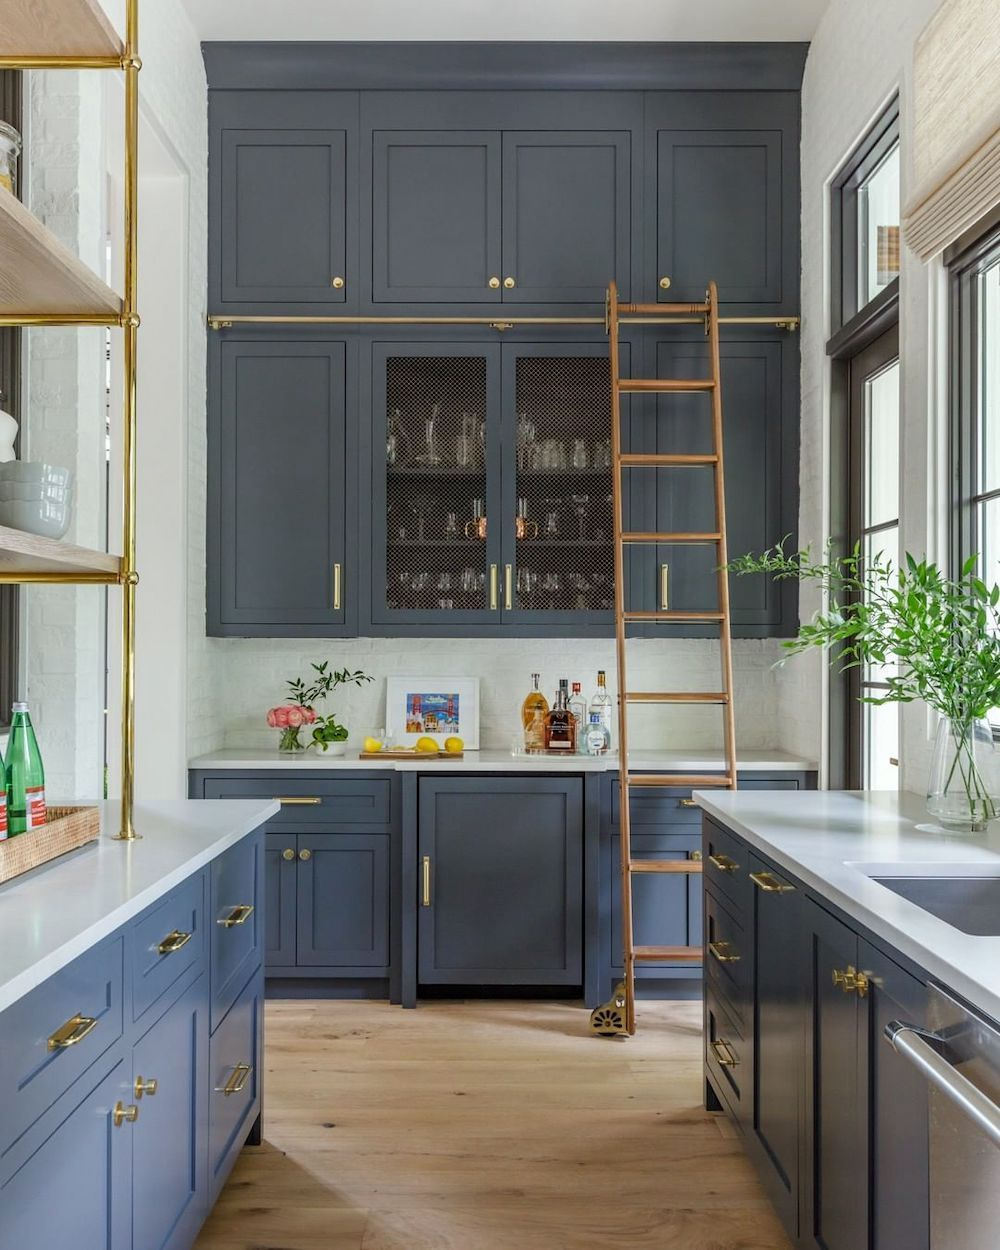 12 No Fail Classic Kitchen Cabinet Colors In 2020 Classic Kitchen Cabinets Kitchen Cabinet Colors Classic Kitchens